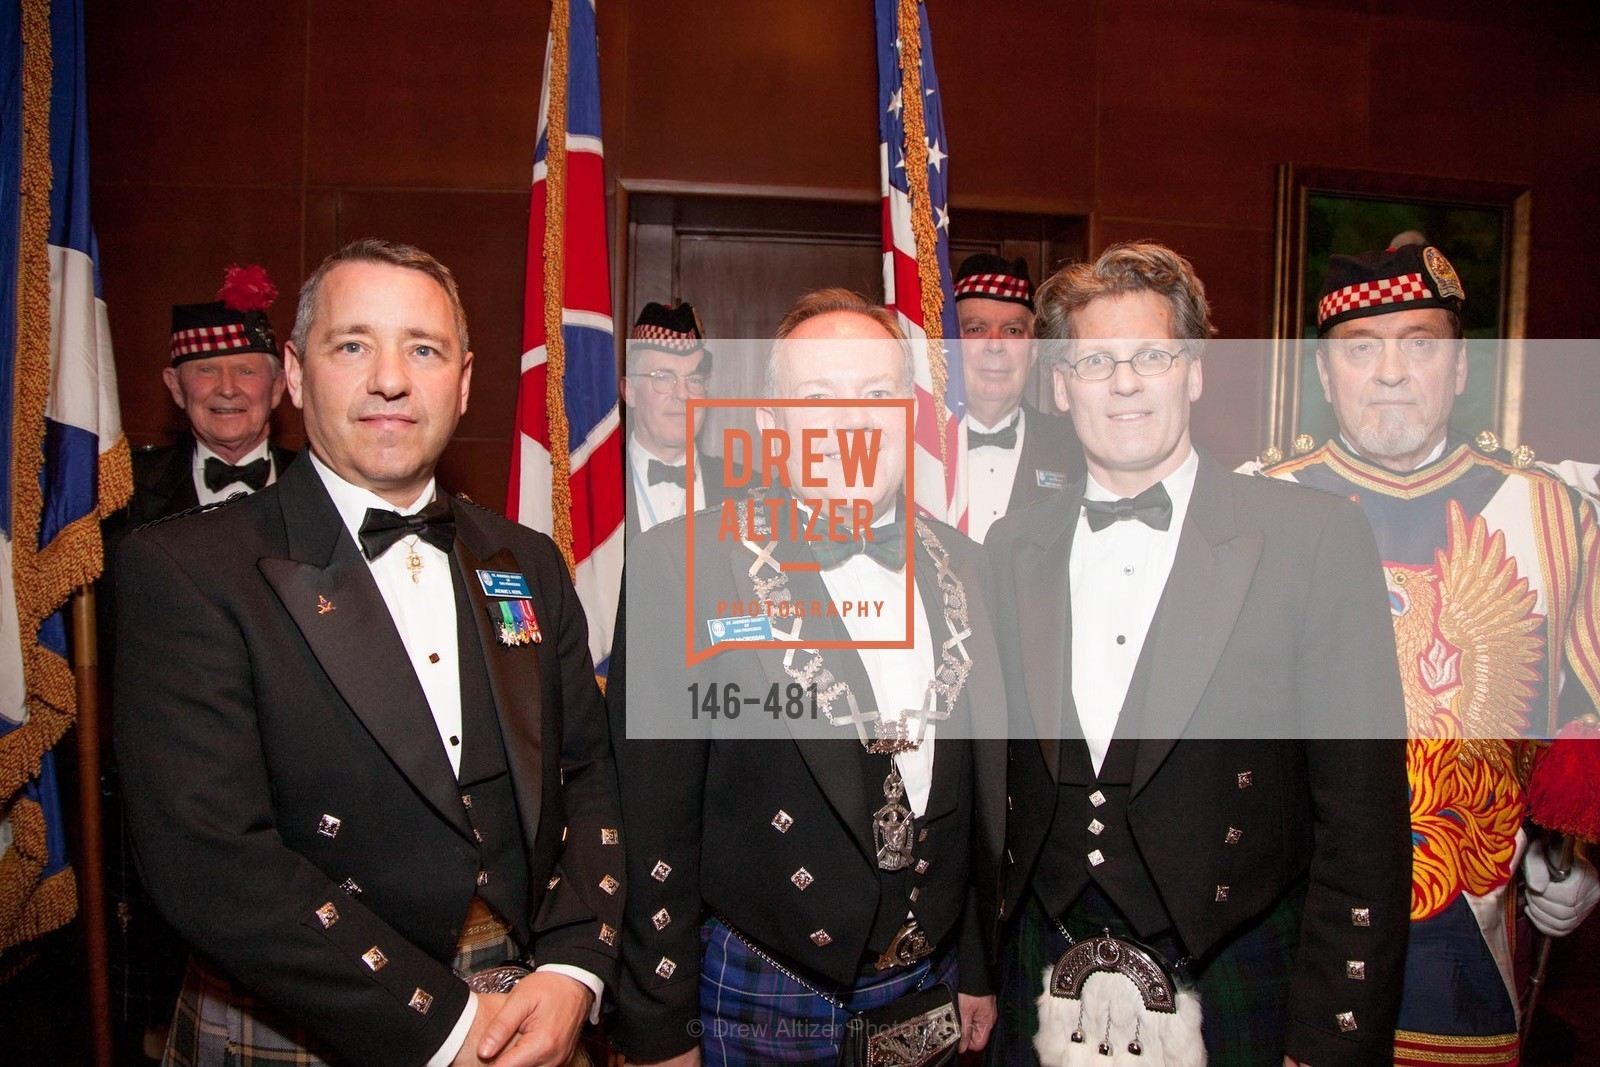 Jaeame Koyil, David McCrossan, David Campbell, Bill Jaggers, ST. ANDREW'S SOCIETY OF SAN FRANCISCO'S Traditional Burns Night Supper 2014, US. US, January 25th, 2014,Drew Altizer, Drew Altizer Photography, full-service agency, private events, San Francisco photographer, photographer california